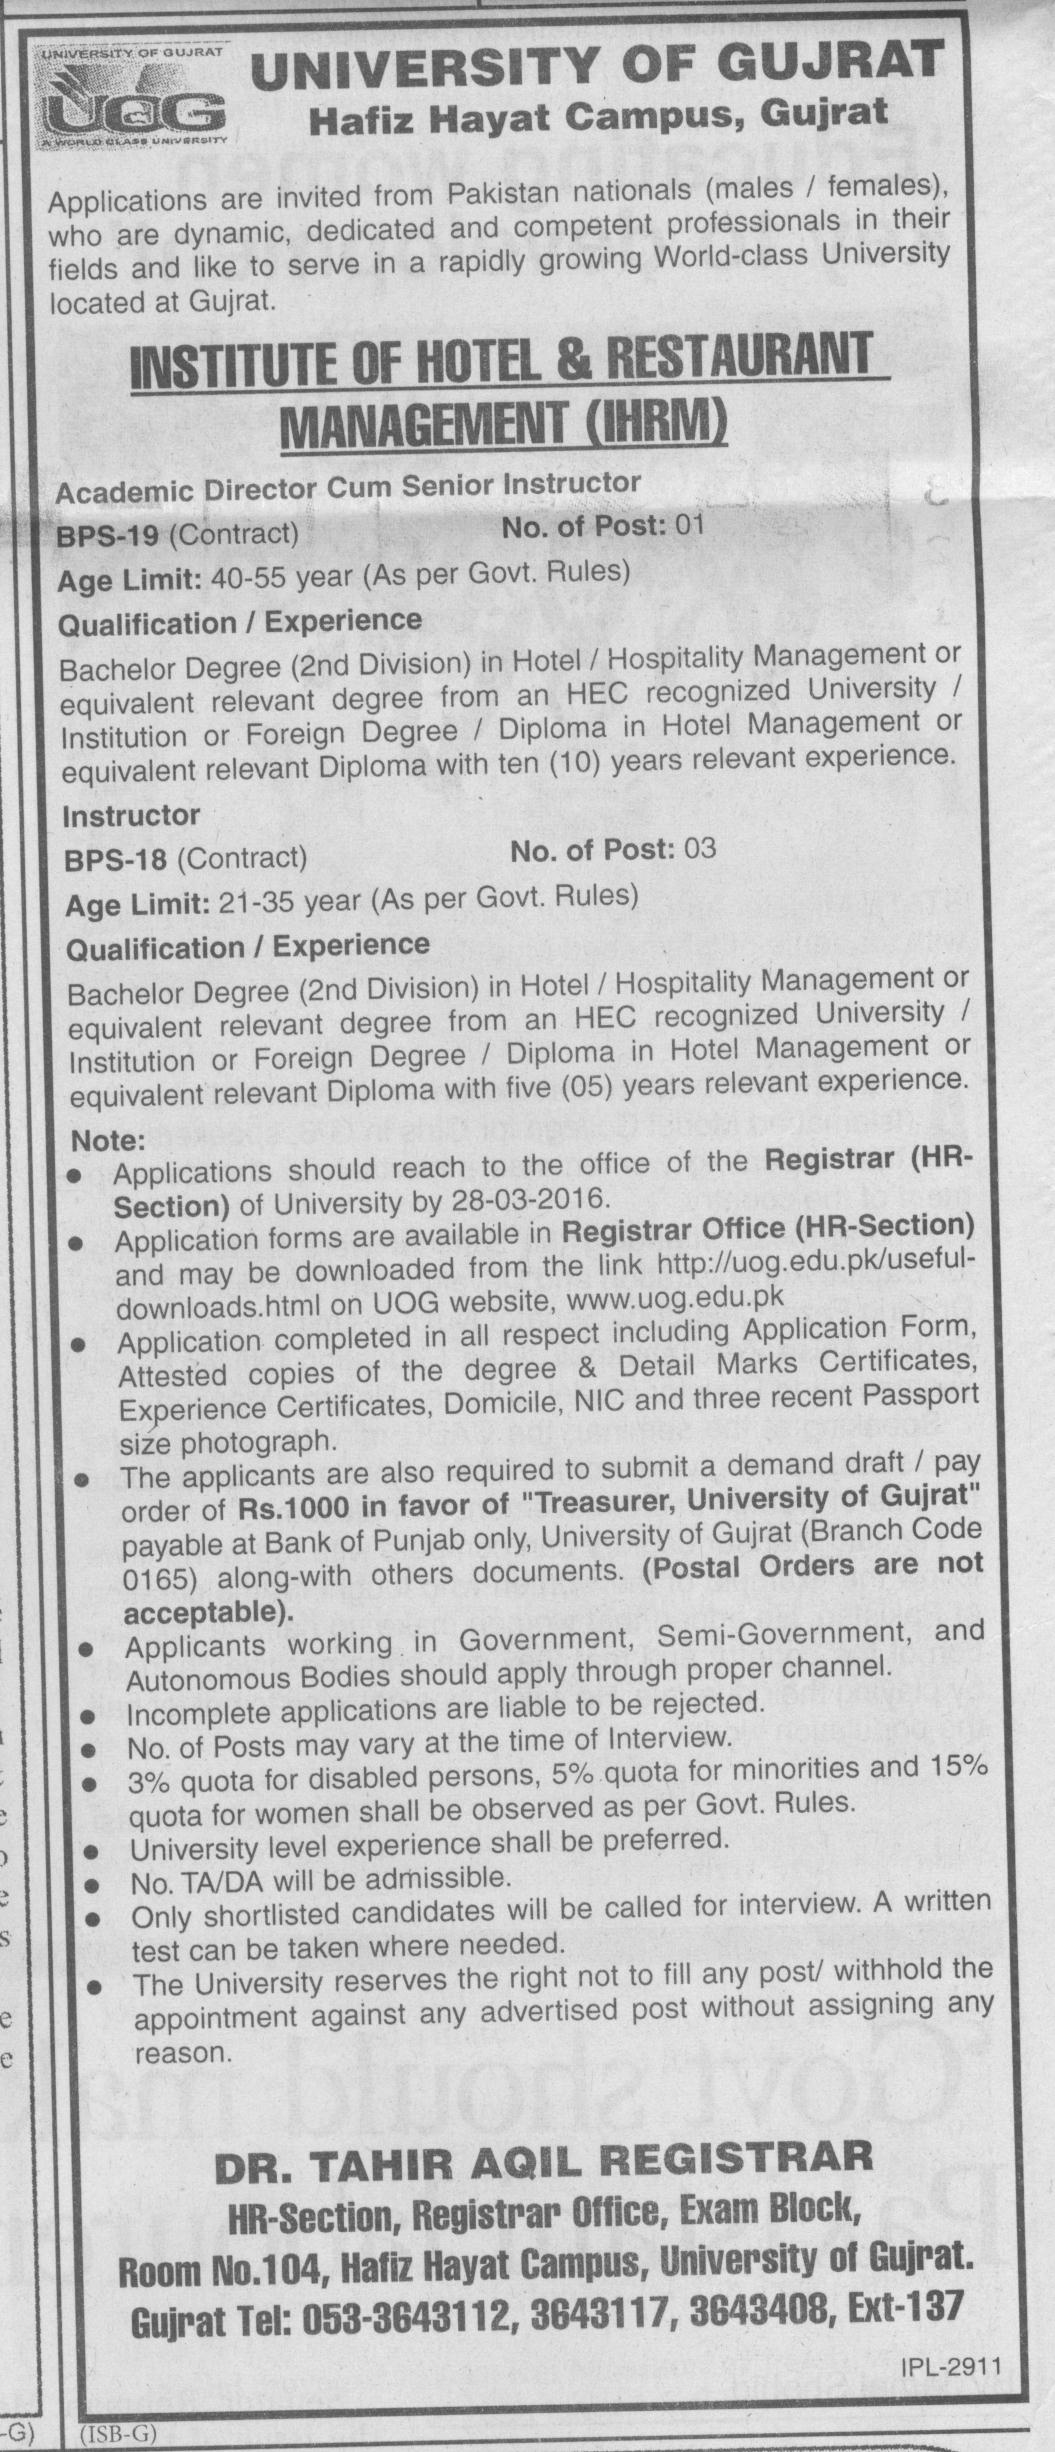 University of Gujrat Jobs 2016